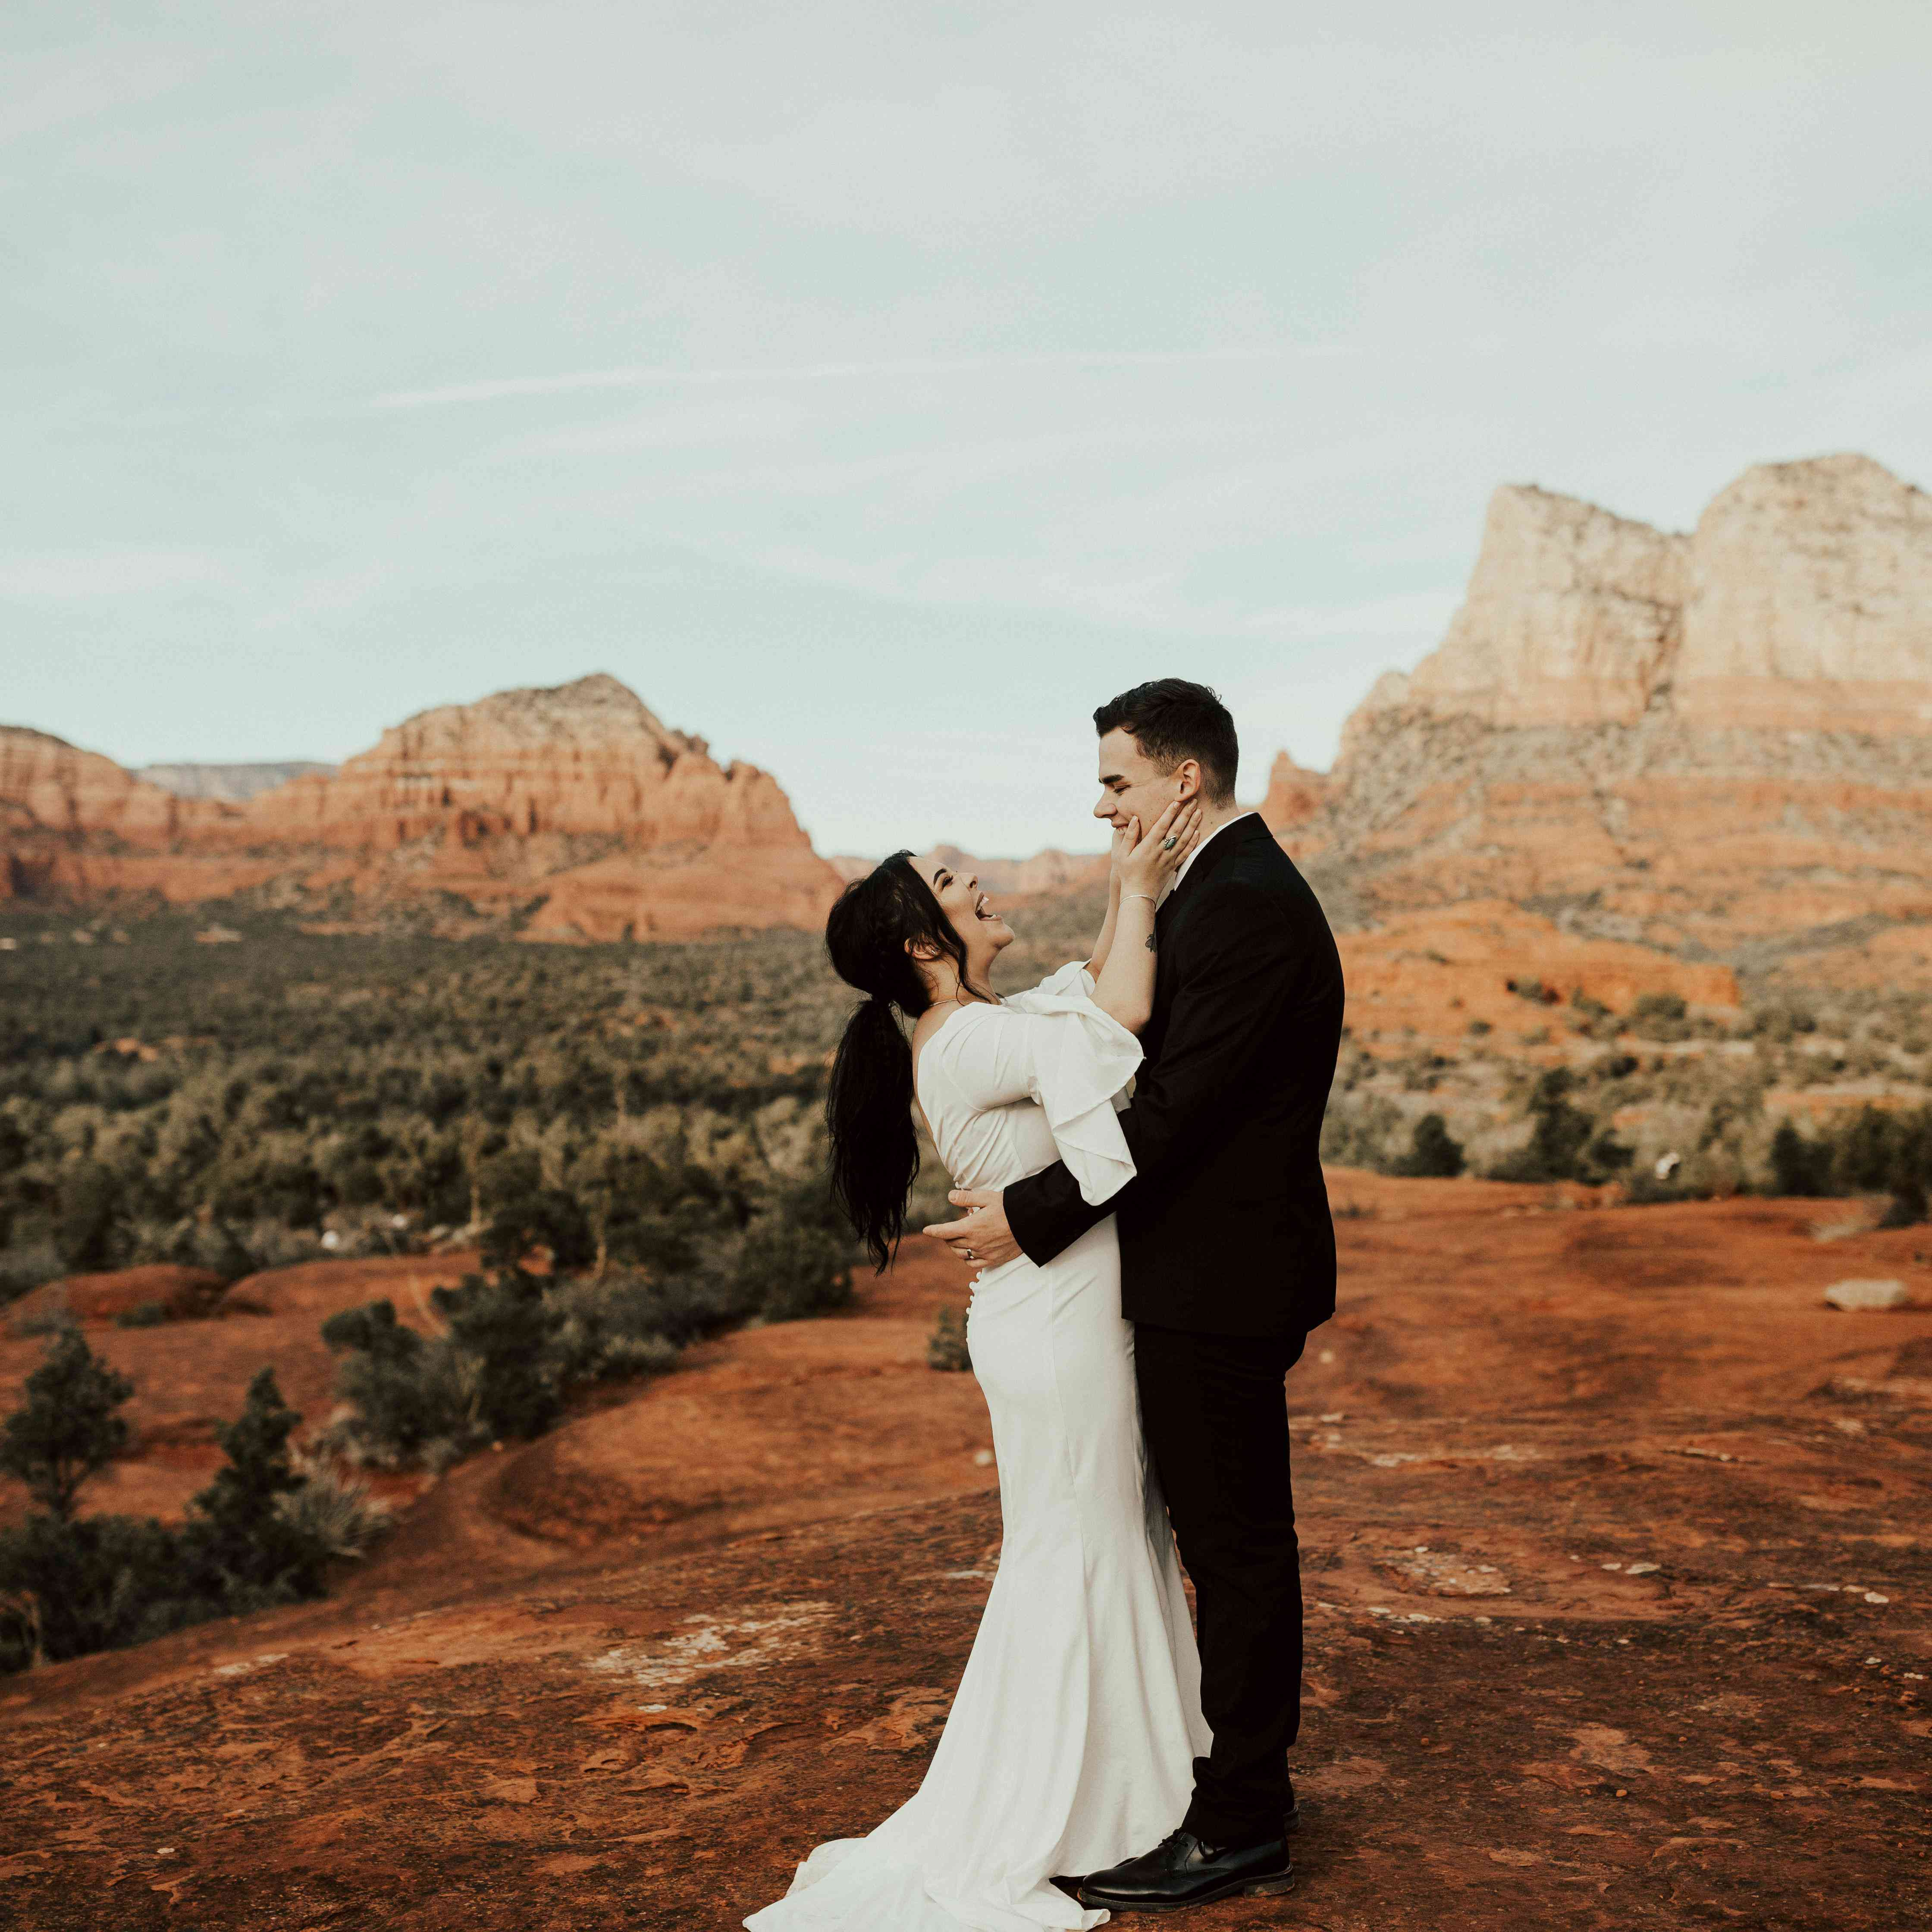 5 Elopement Packages For The Bride Who Wants A Non